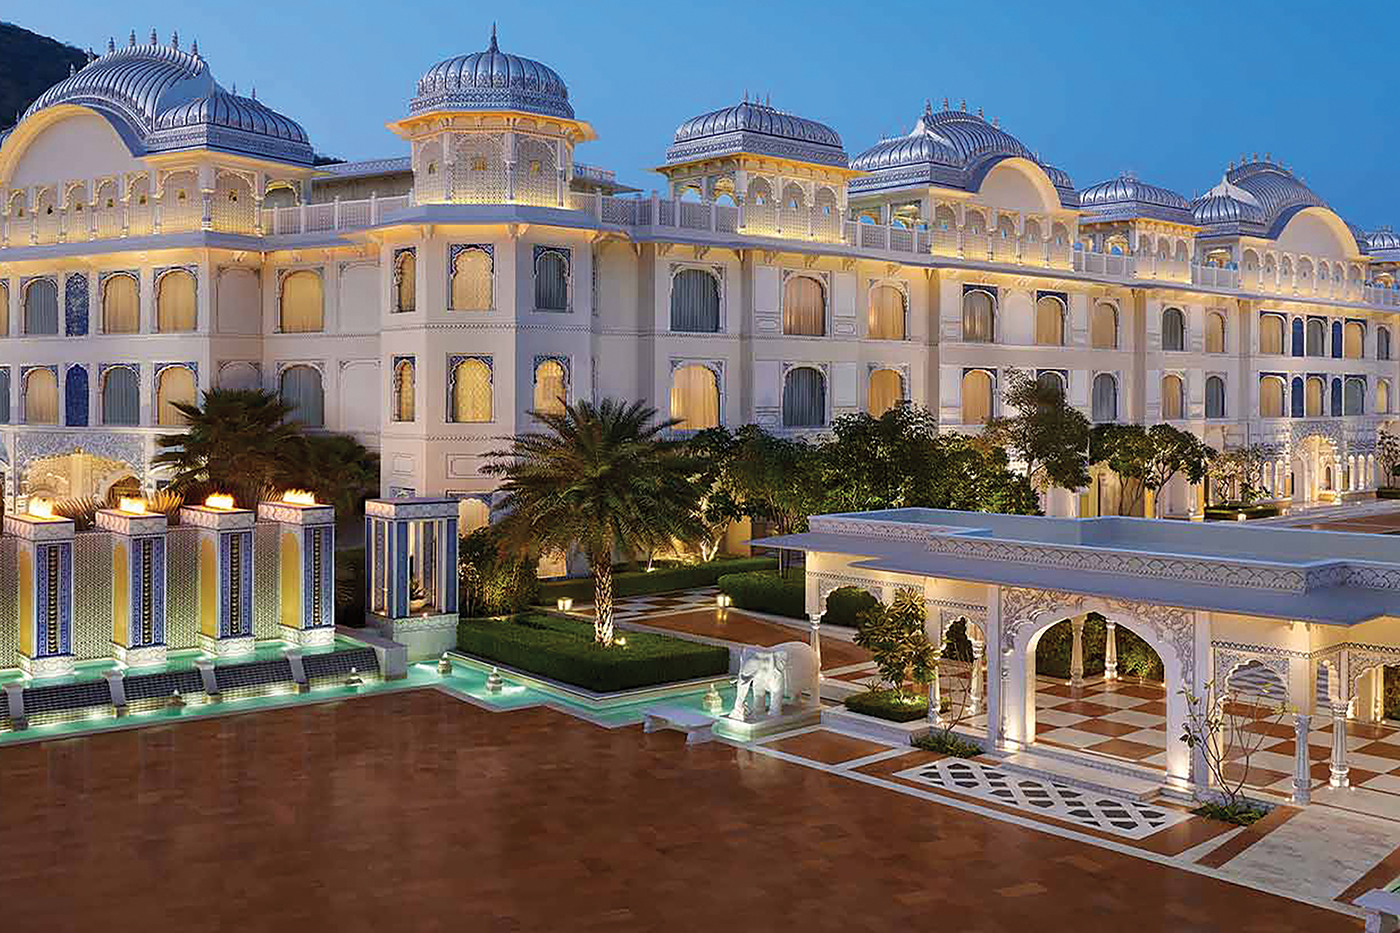 Leela Palace Jaipur opens with a royal vibe